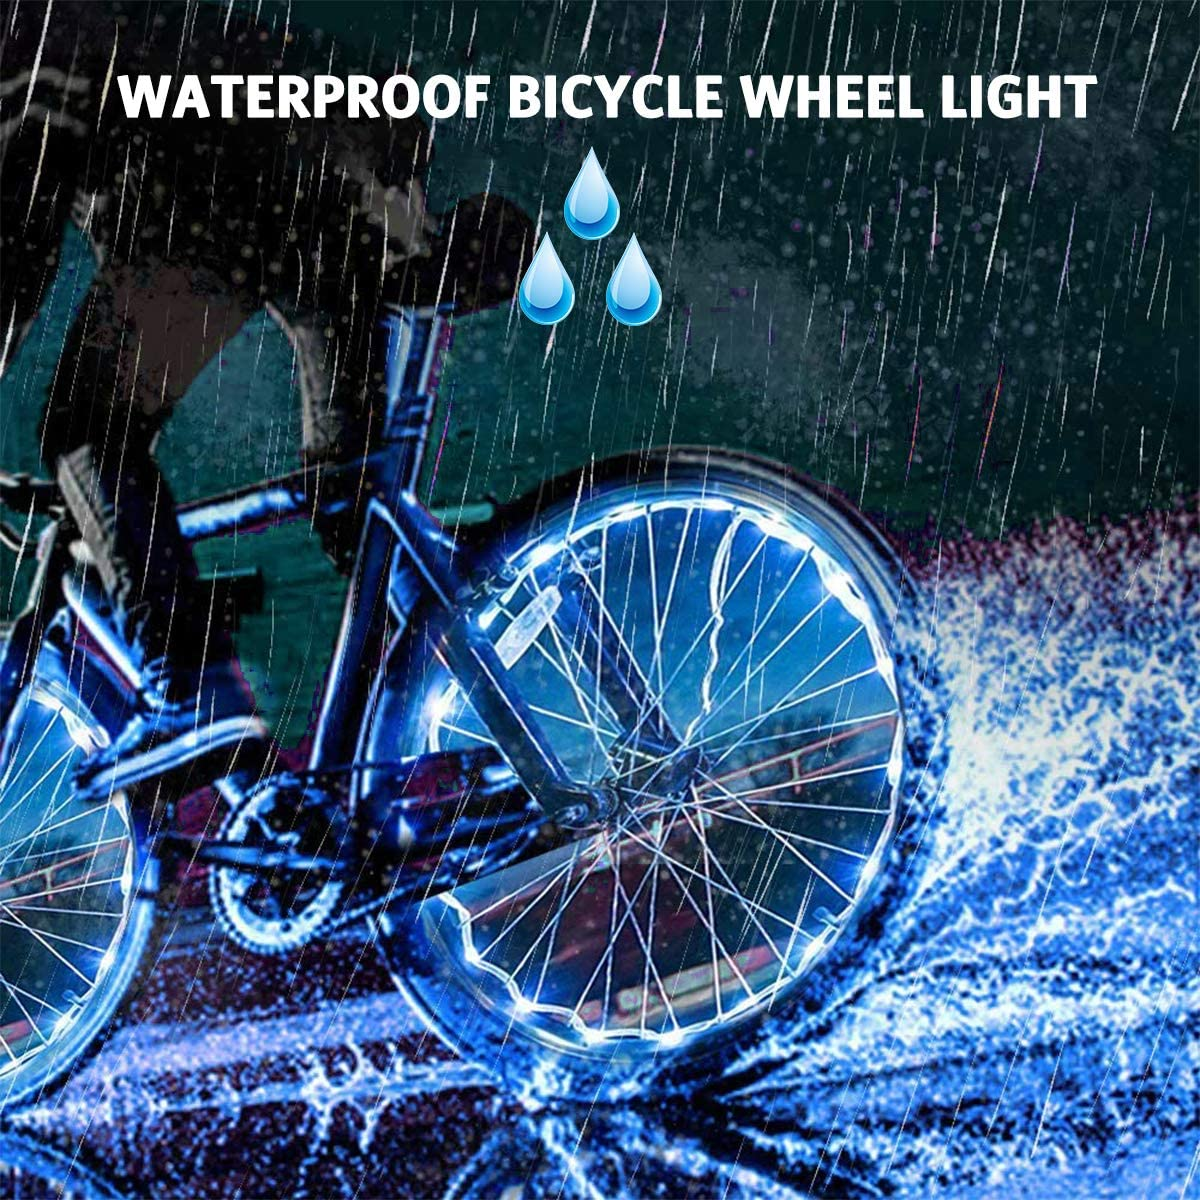 1 Tire Pack AOYOO LED Bike Wheel Light String Waterproof Outdoor Bicycle Night Light Tire Lighting Accessories with 7 Color Modes and Batteries Included for Ultimate Safety /& Style